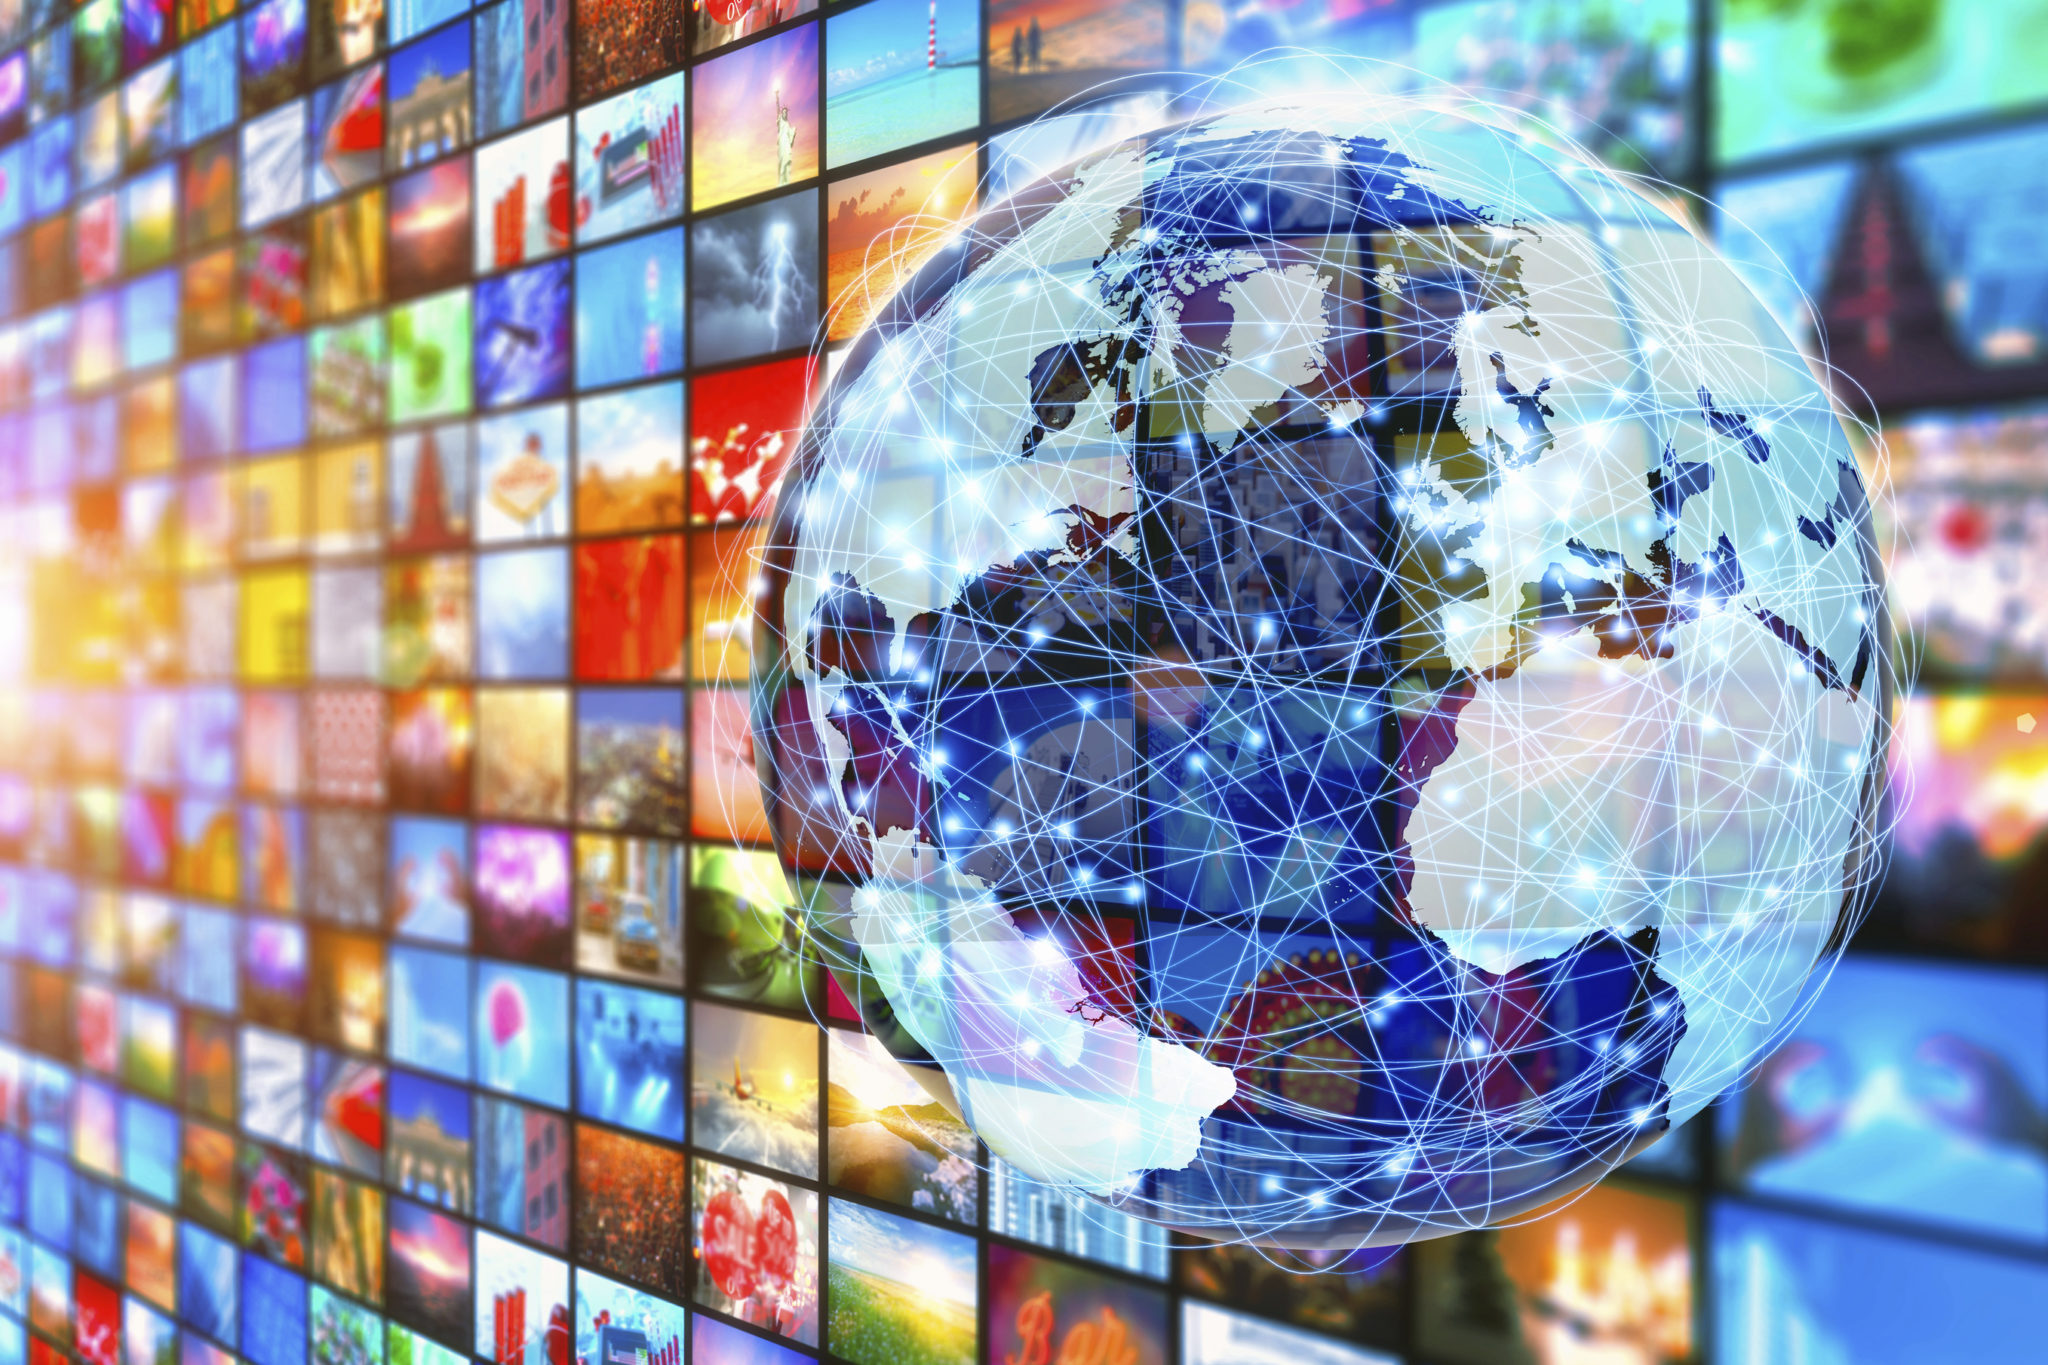 Media wall with a pattern of colorful images resembling a television broadcasting concept with planet Earth in front of it, connected by a global network, with glowing nodes and surrounding links. Hundreds of color video stills projected on television displays around the world, as a metaphor of video entertainment and global communications.